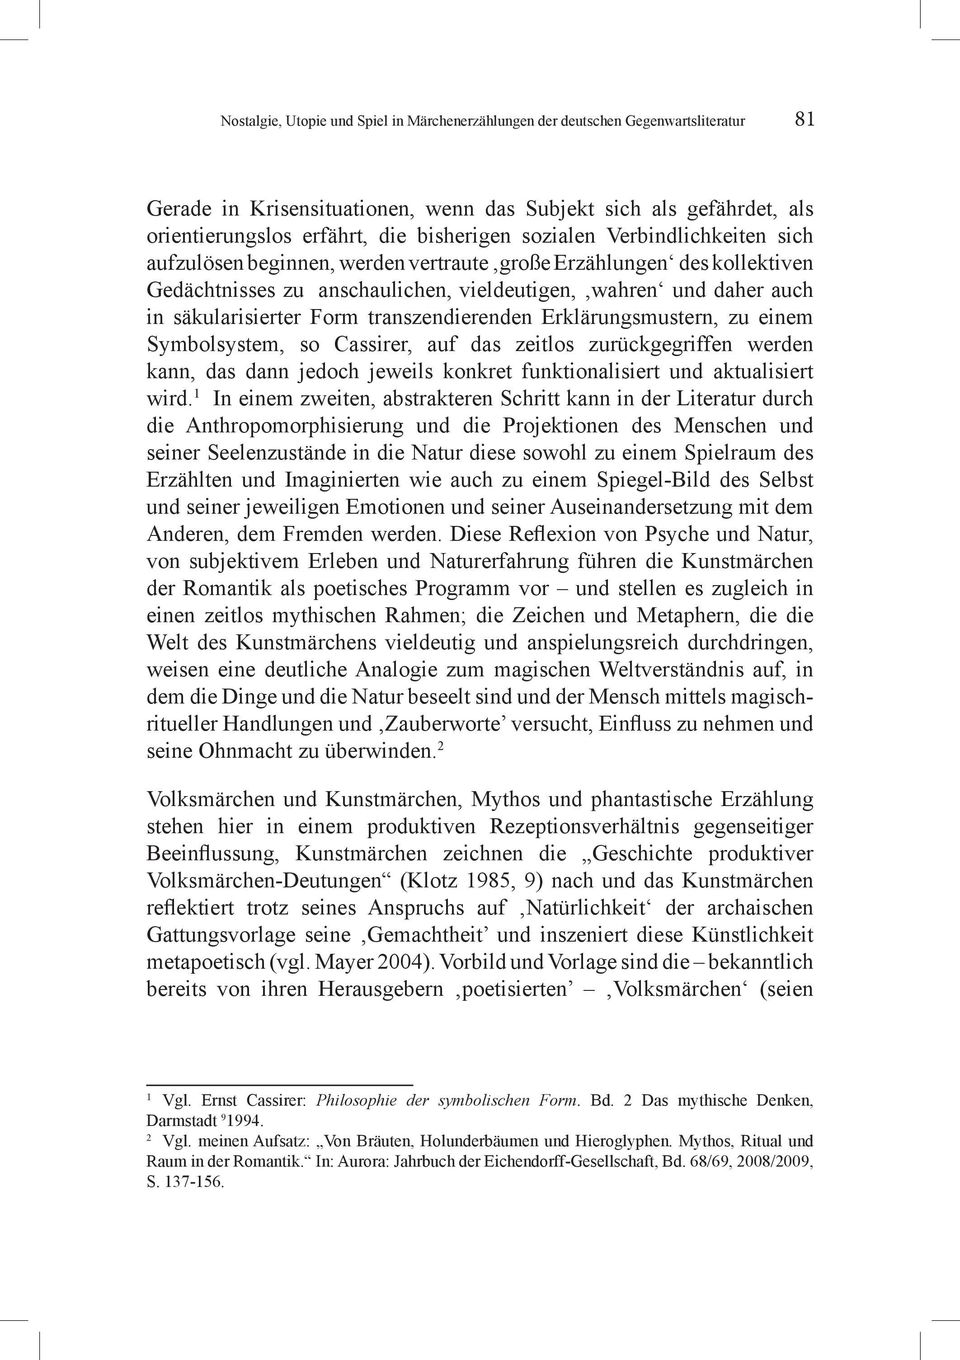 cassirer philosophy of symbolic forms pdf